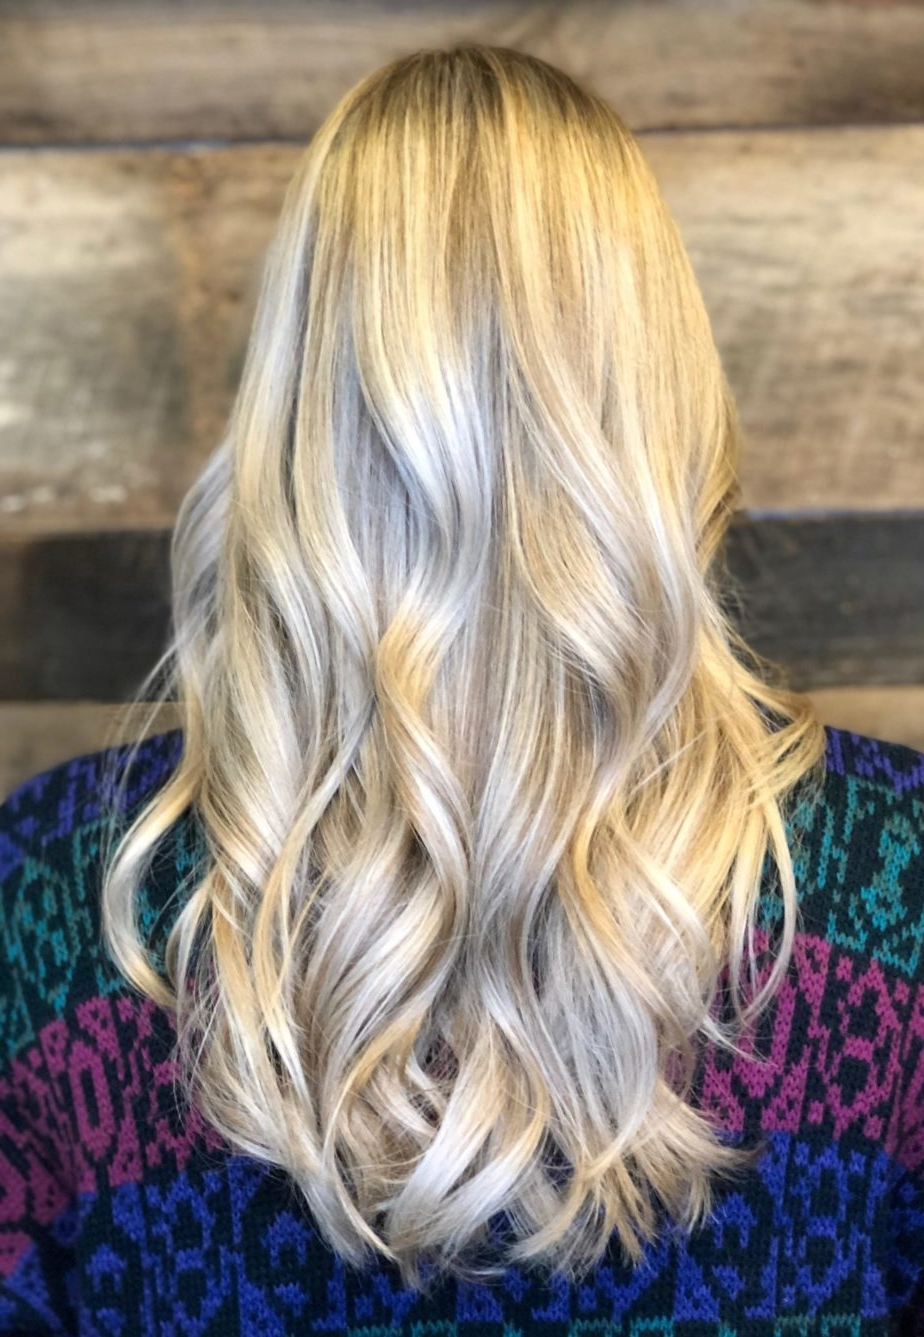 Well Liked Icy Highlights And Loose Curls Blonde Hairstyles Intended For Raleigh Hair Salon Best Reviews Icy Platinum Blonde Hair Color Long (View 20 of 20)